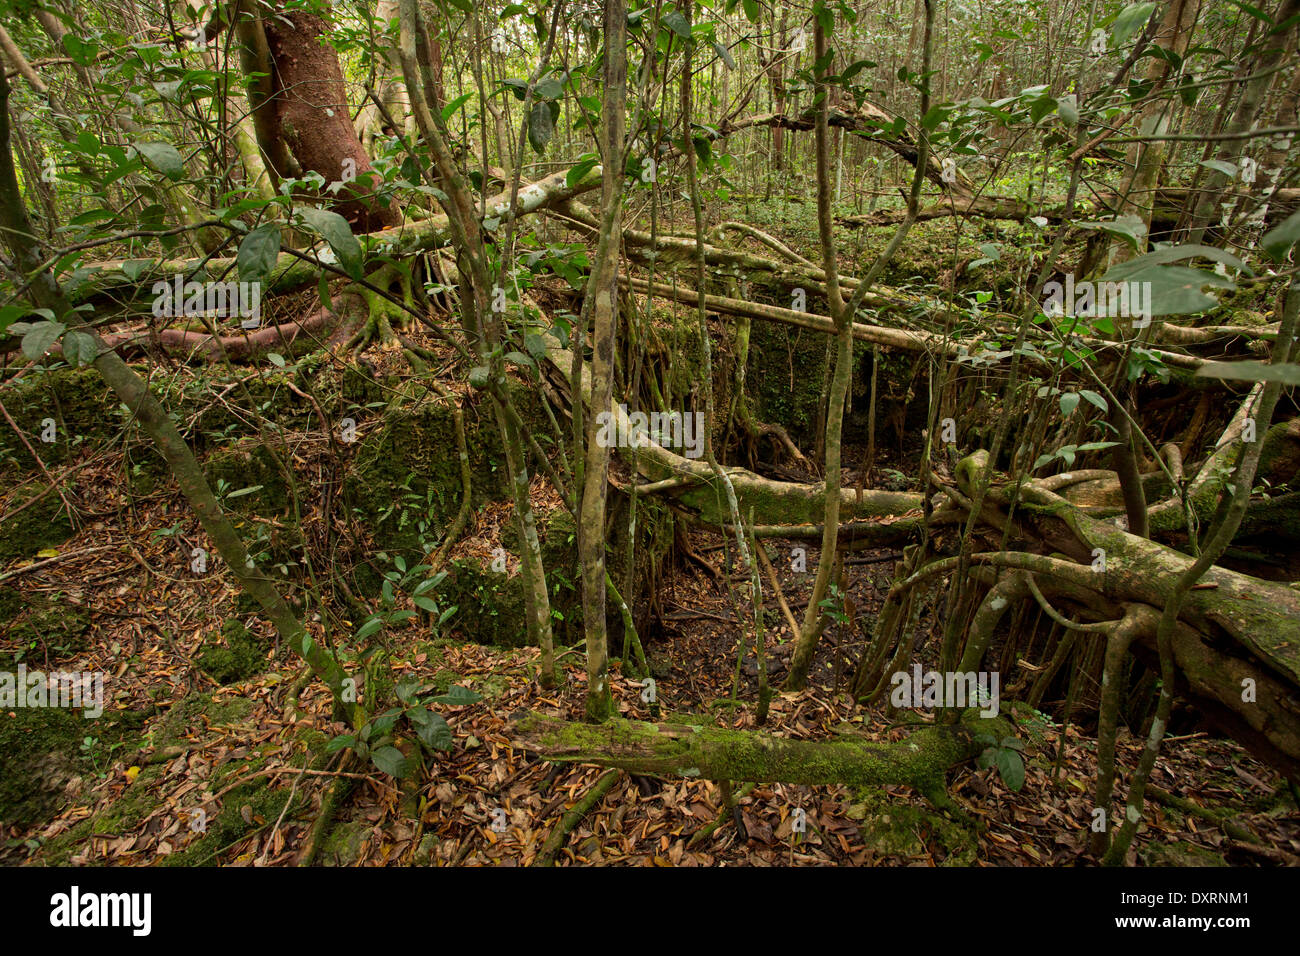 sinkhole or solution hole in miami oolite limestone bedrock at castellow hammock reserve miami florida sinkhole or solution hole in miami oolite limestone bedrock at      rh   alamy